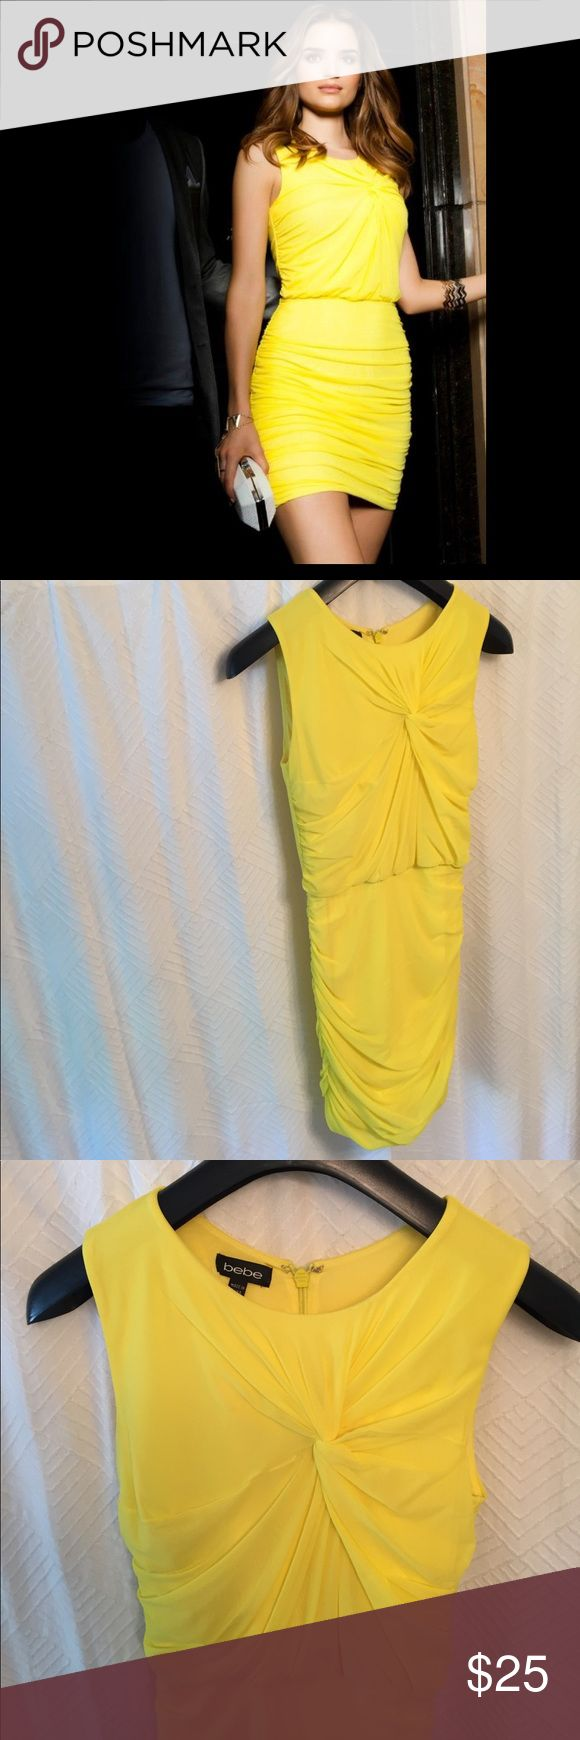 Bebe yellow dress! Fun little yellow dress from Bebe. Super flattering rouching. Great for a night out with the girls!  Light small stain on front near the fabric twist but barely noticeable. bebe Dresses Mini